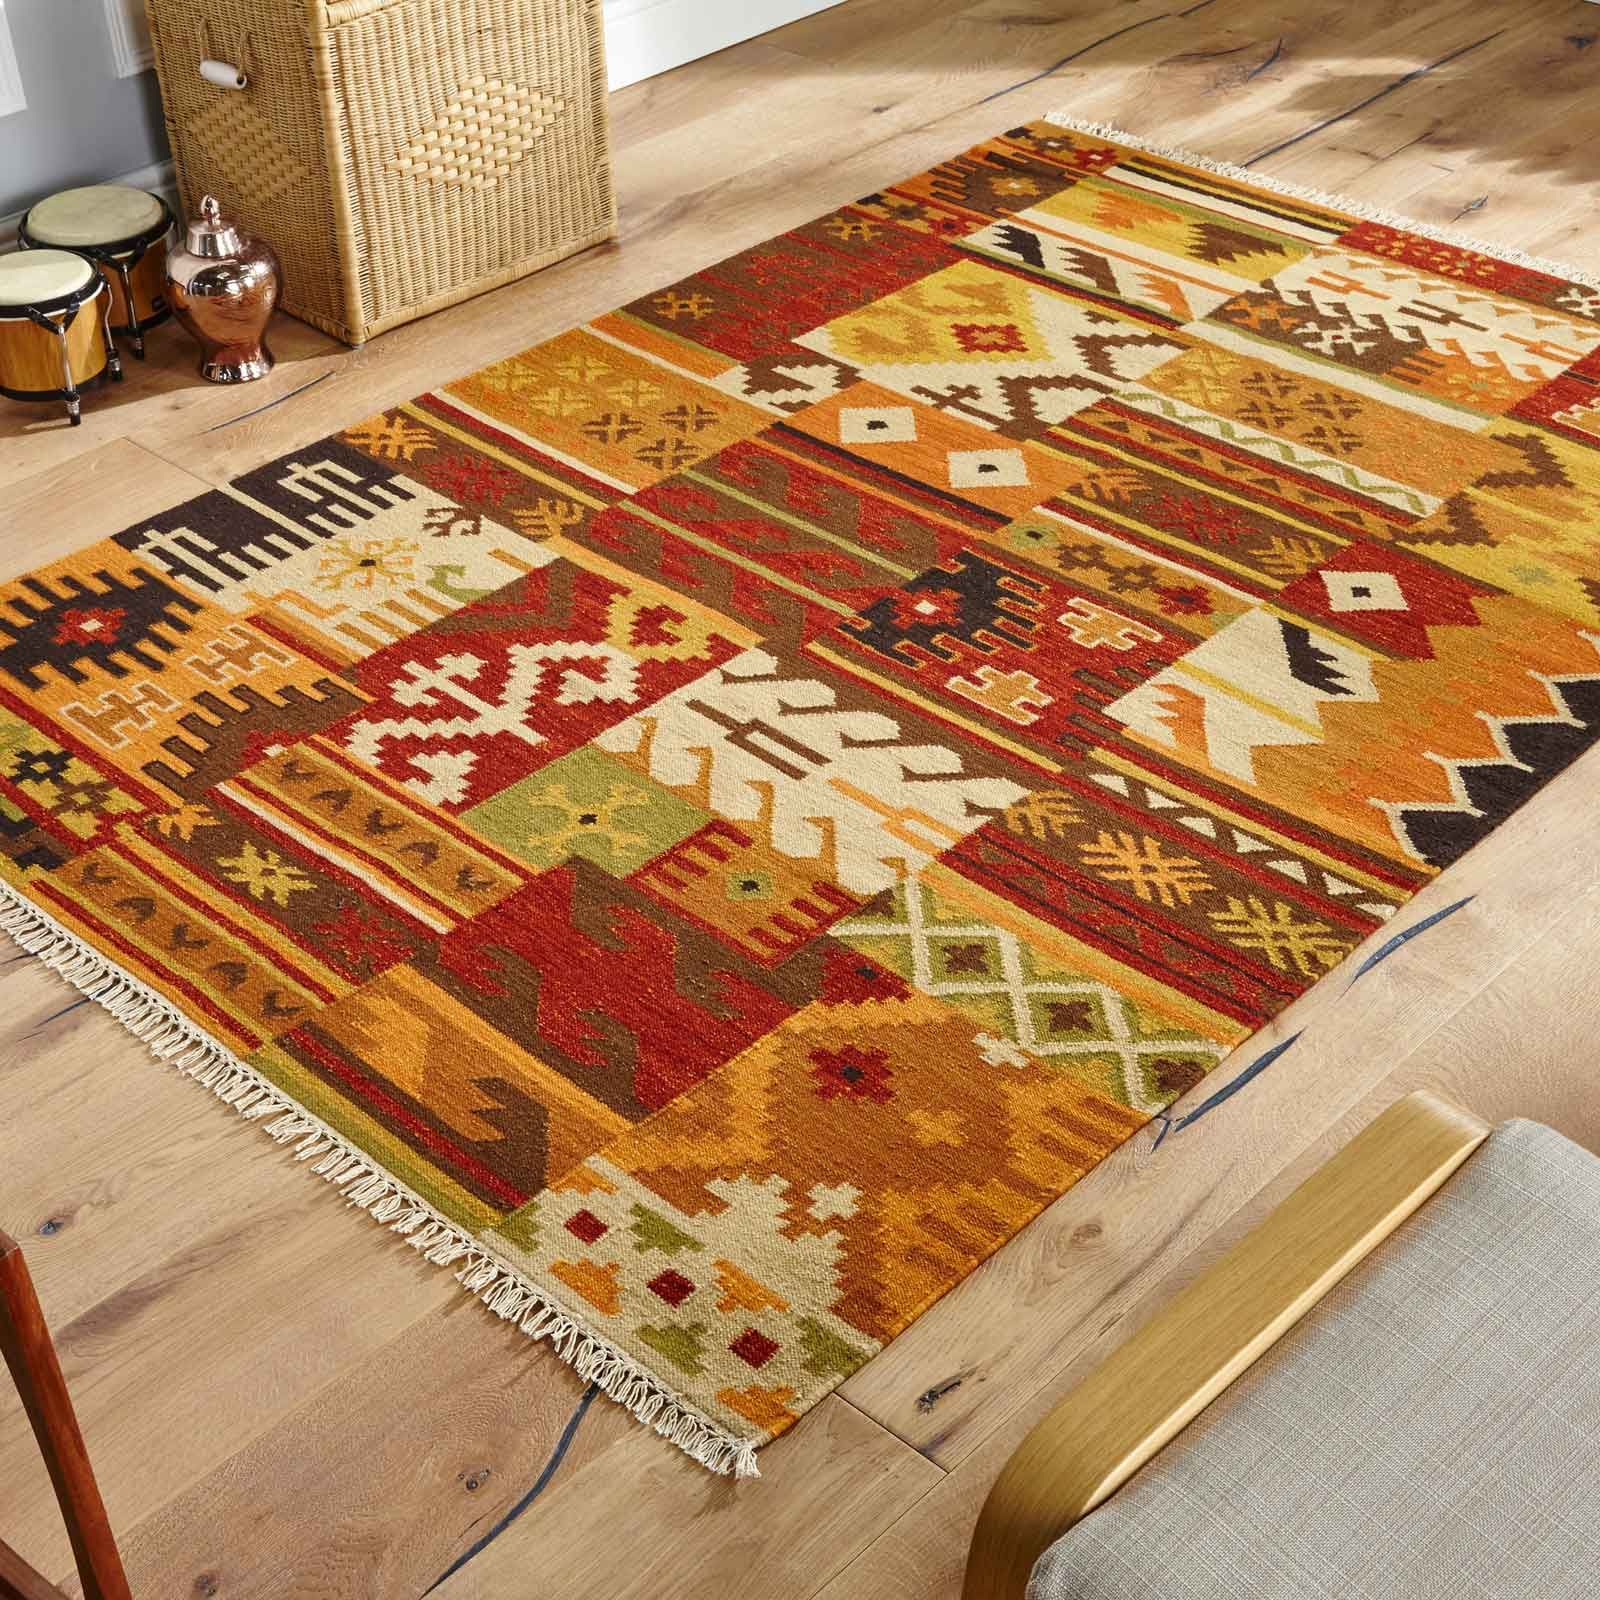 Kilim Rugs Are Made By Interweaving The Warp And Weft To Offer A Flatwoven Rug